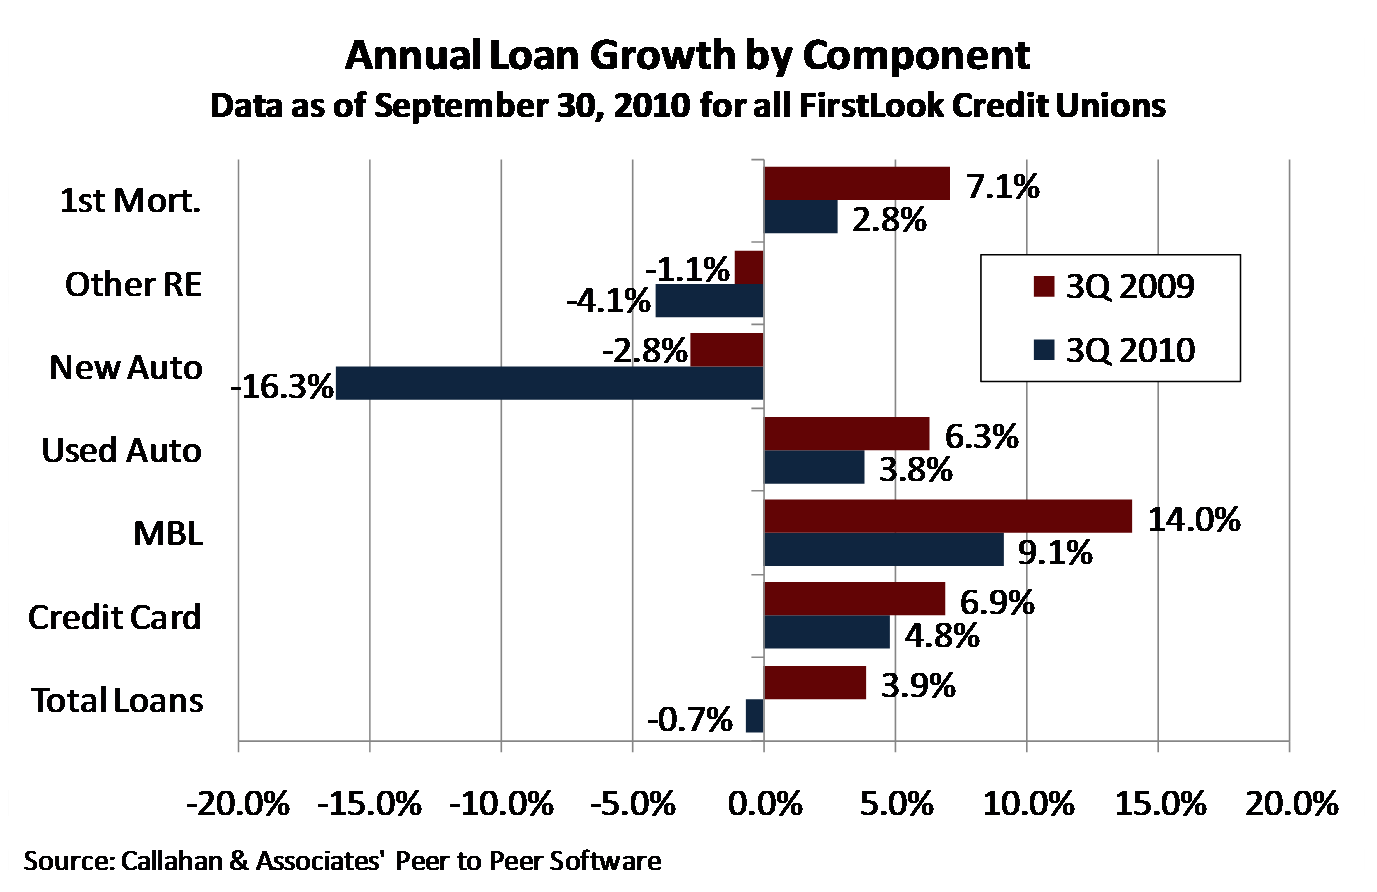 Annual Loan Growth by Component